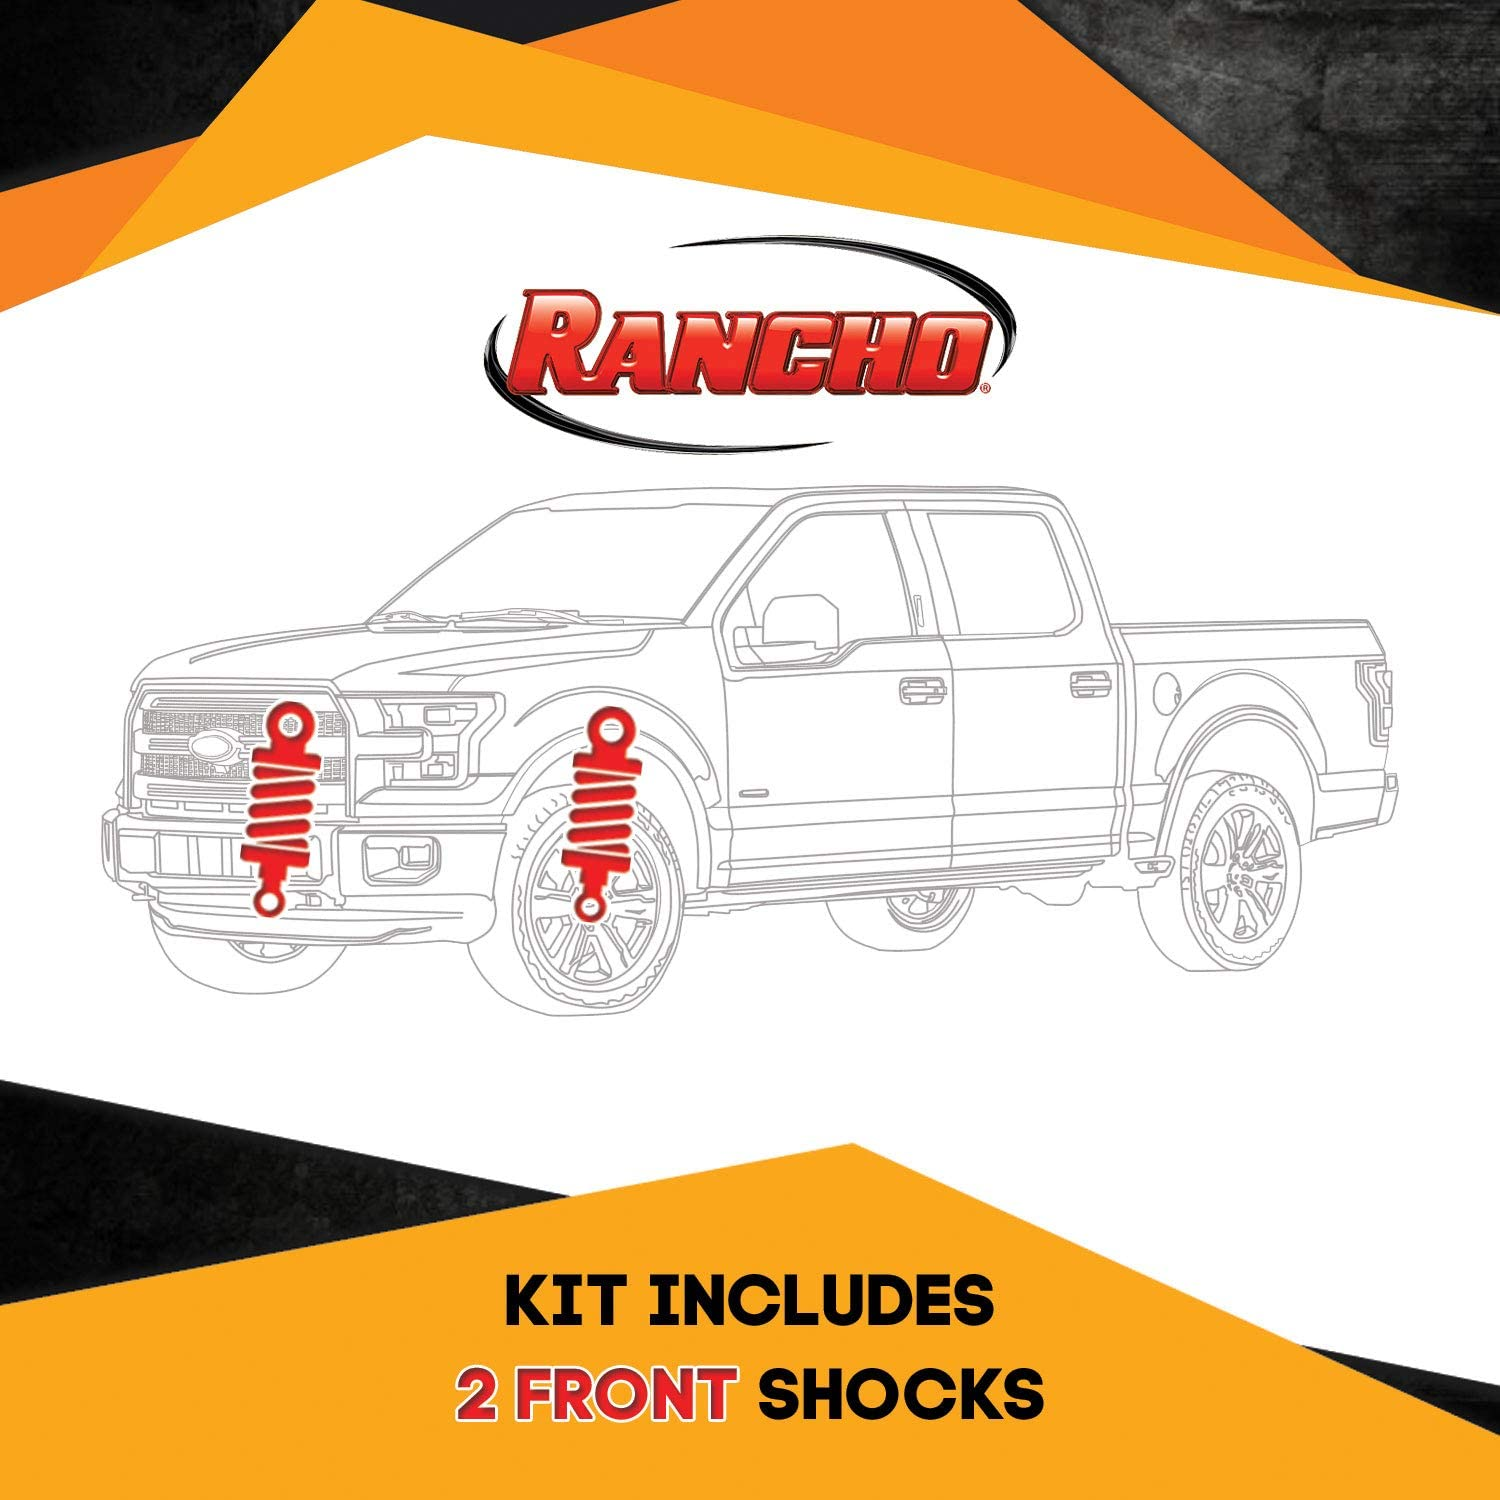 Kit of 2 Rancho RS5000X Front 2.5 inch lift Lift Shocks for Ford F-350 Superduty 4WD 1999-2004